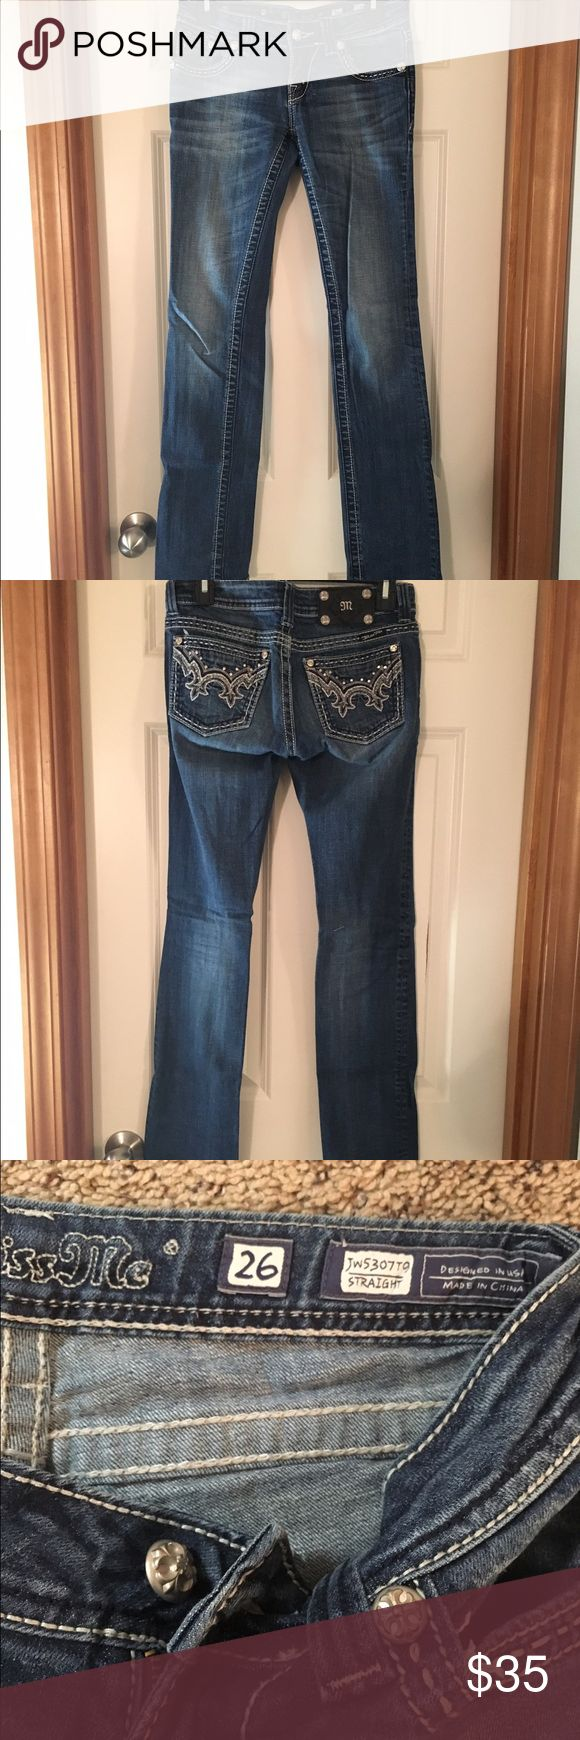 Miss Me denim straight cut jeans Miss Me denim straight cut jeans with sequined back pockets. Low waisted with light fading style. Lightly worn! Miss Me Jeans Straight Leg